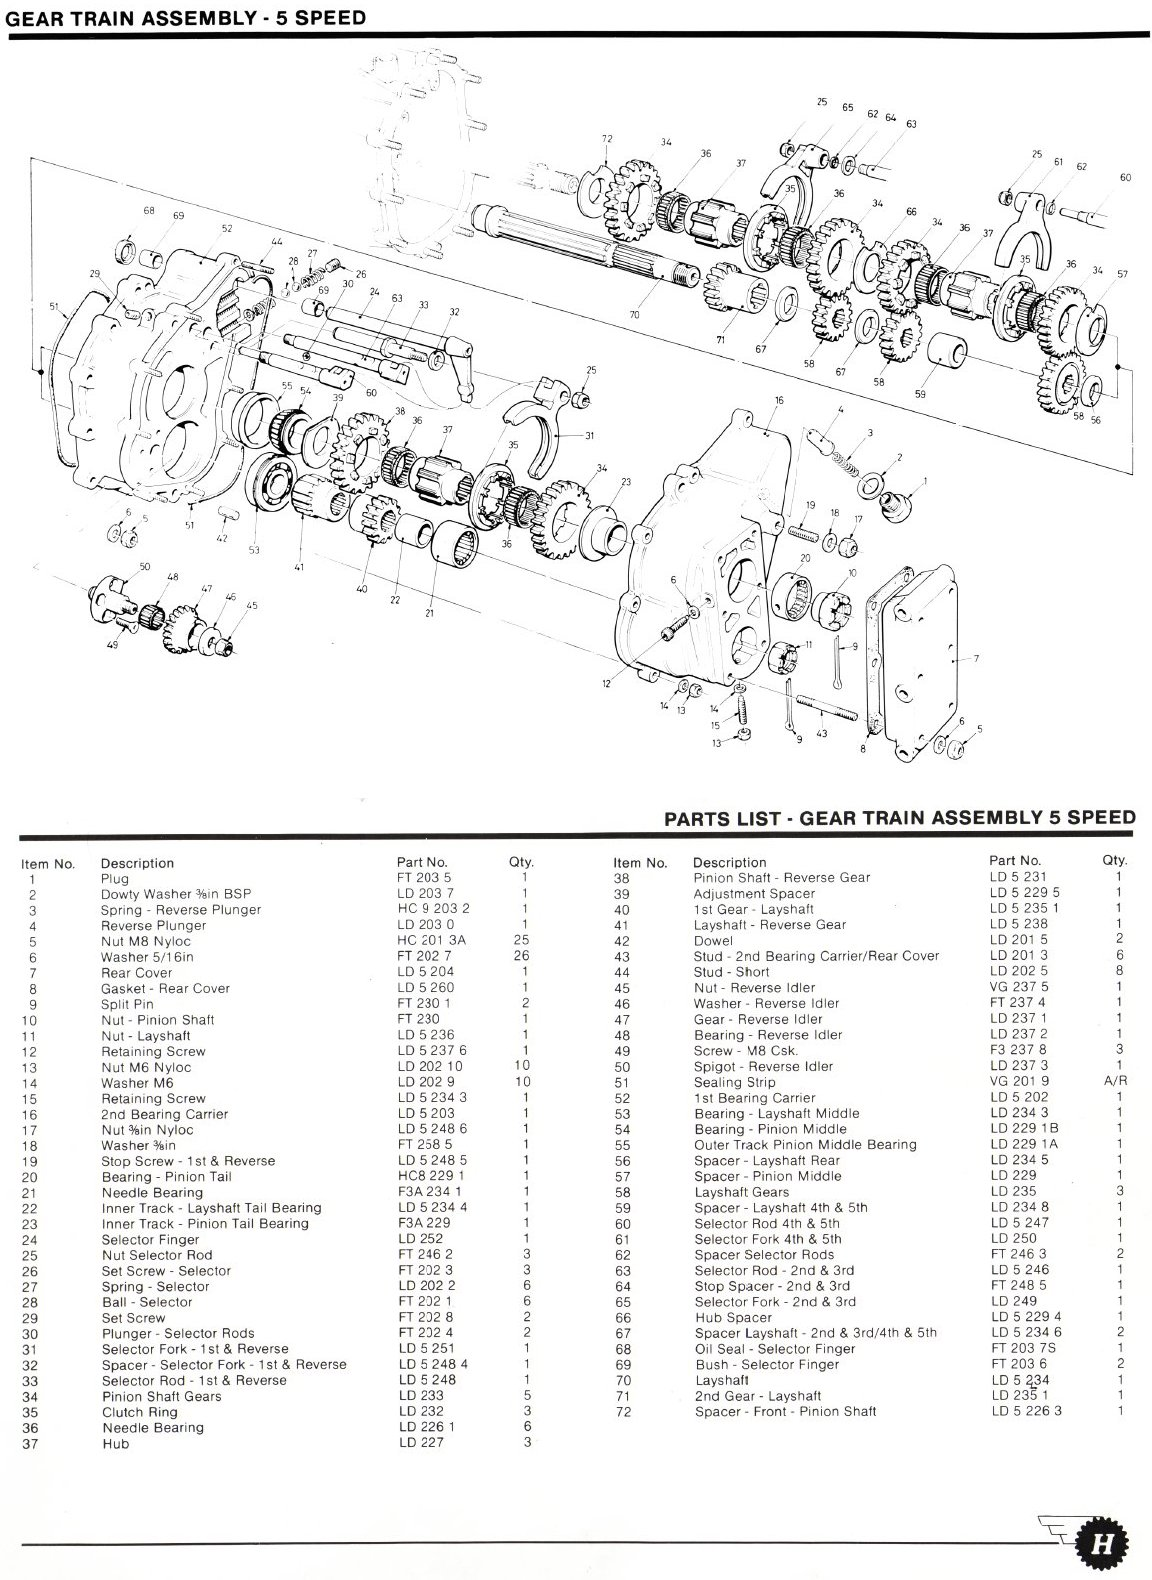 LD Gearbox